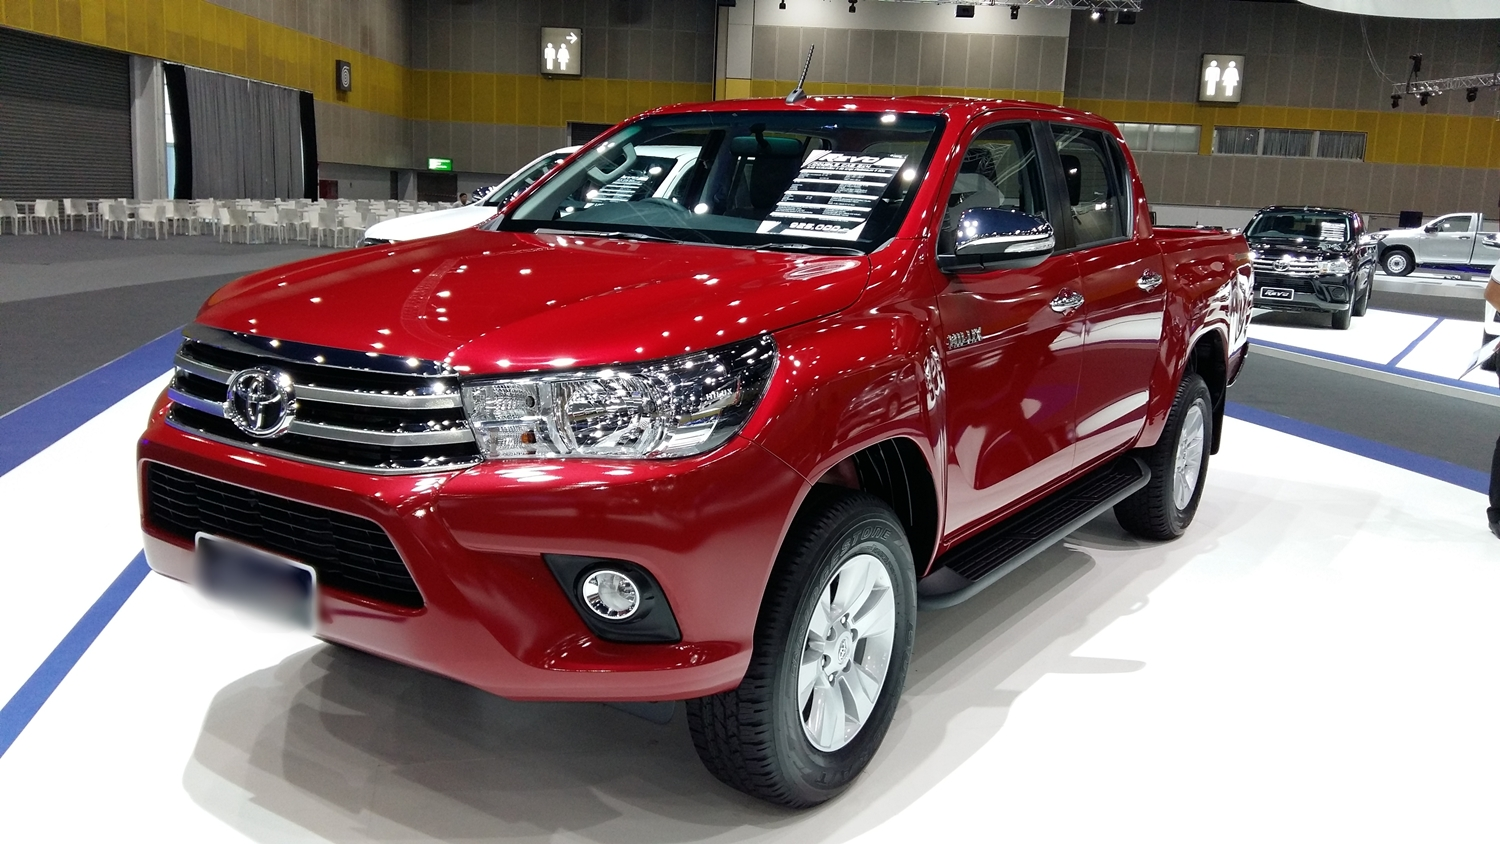 Toyota Hilux 4x4 Double Cab Standard 2018 Model Features